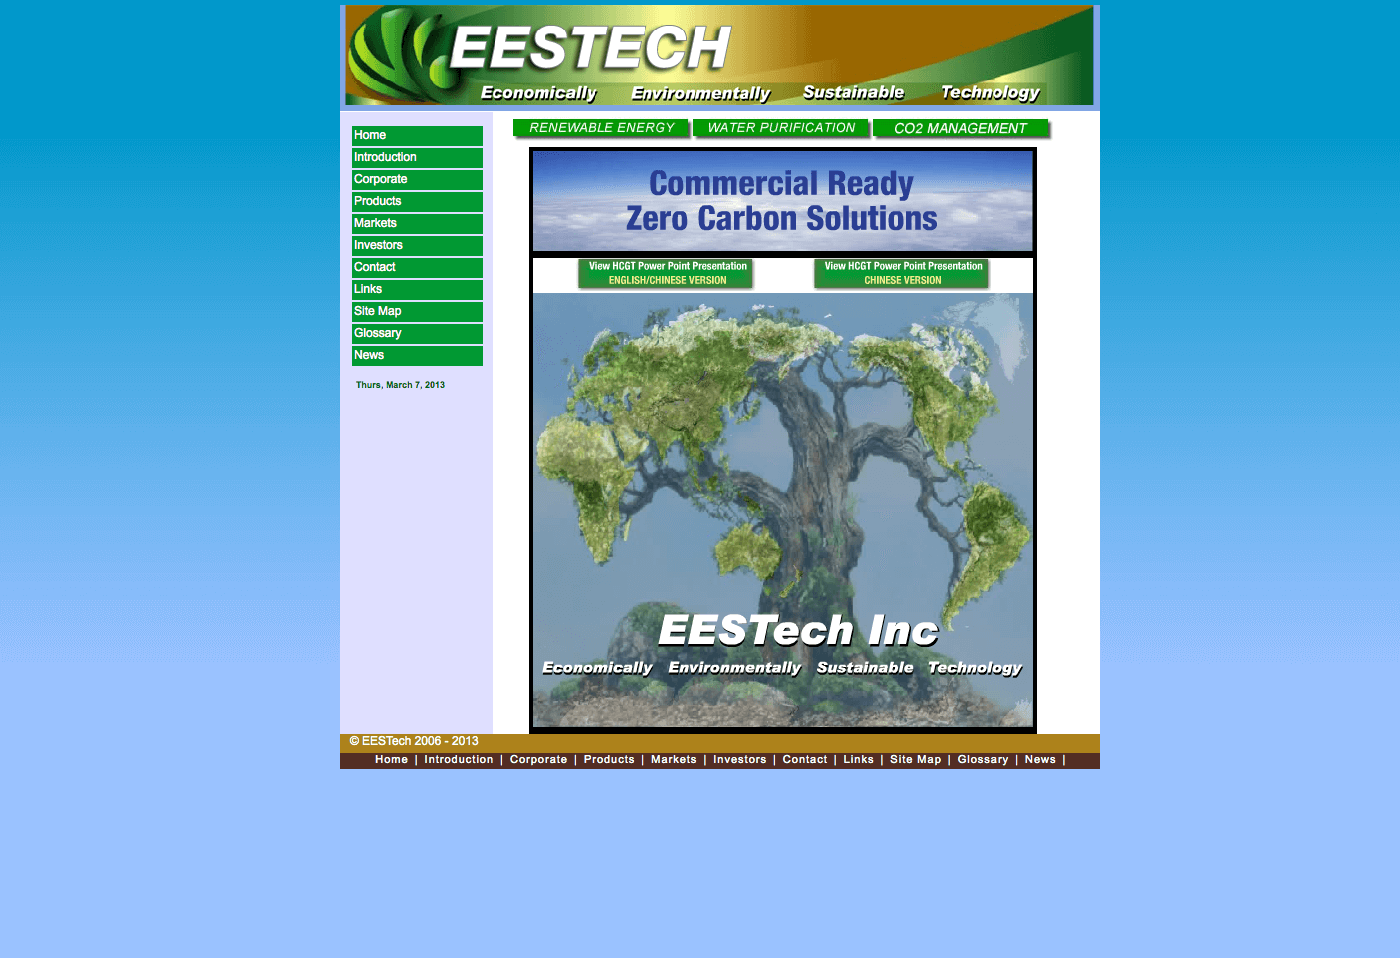 EES Tech Inc